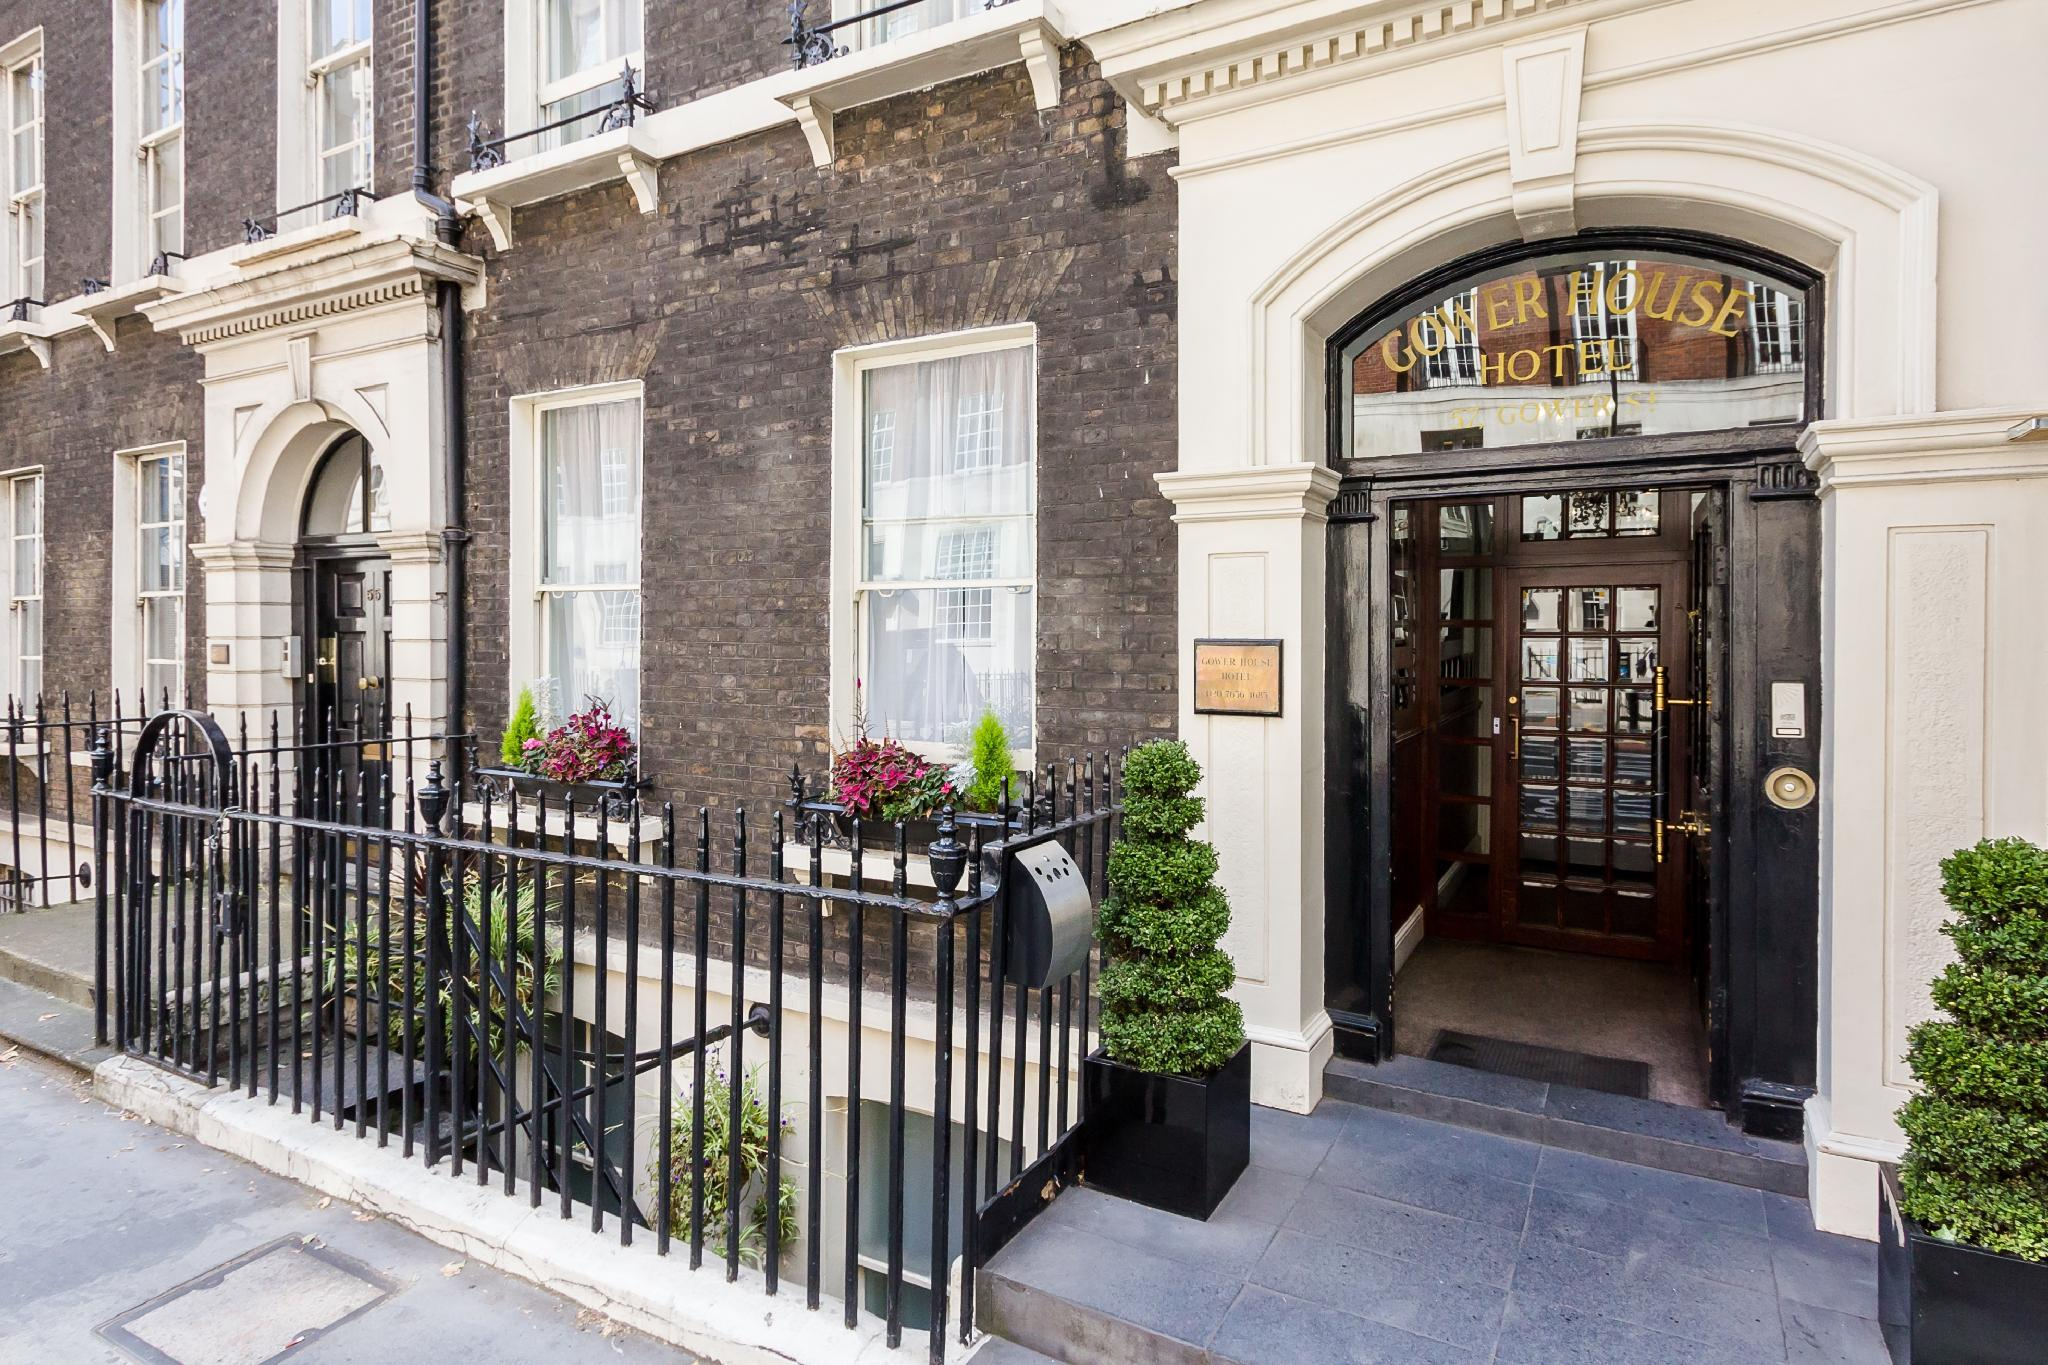 Gower House Hotel, London